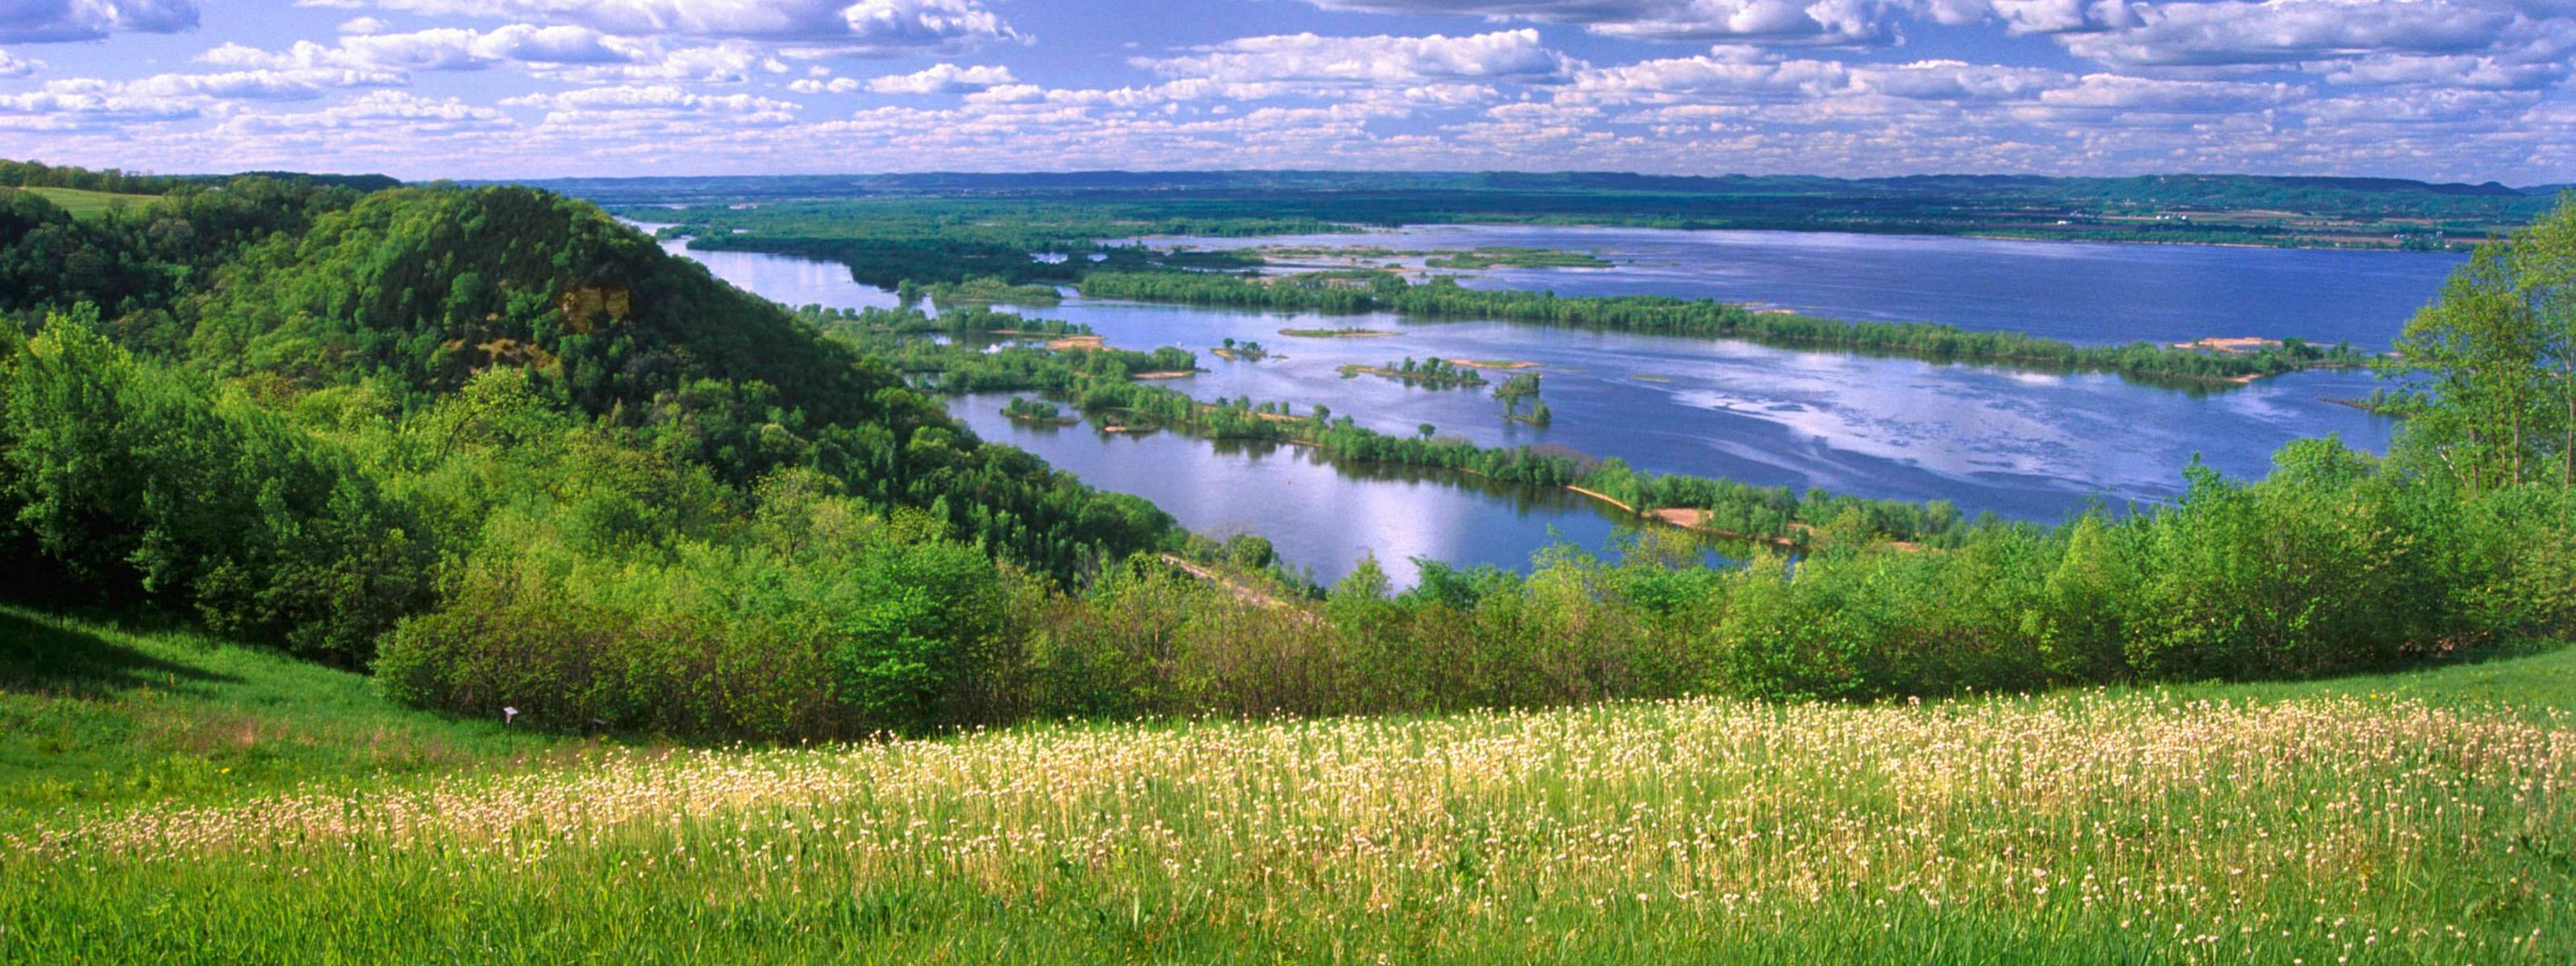 View of the Mississippi River from a field in Onalaska, Wisconsin